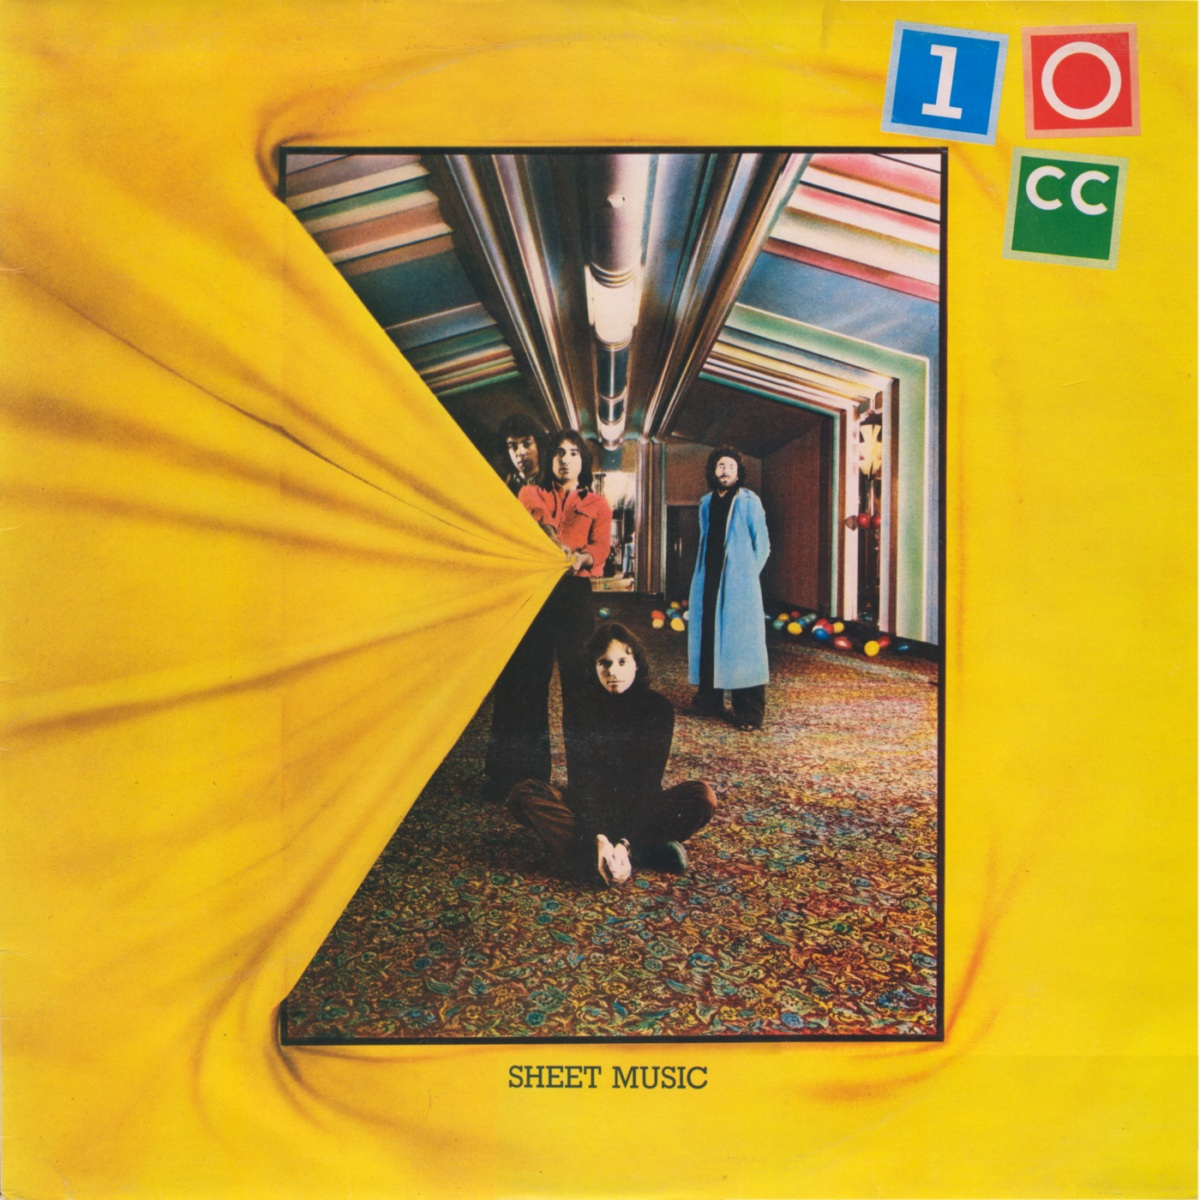 81-10cc-sheet-music.jpg